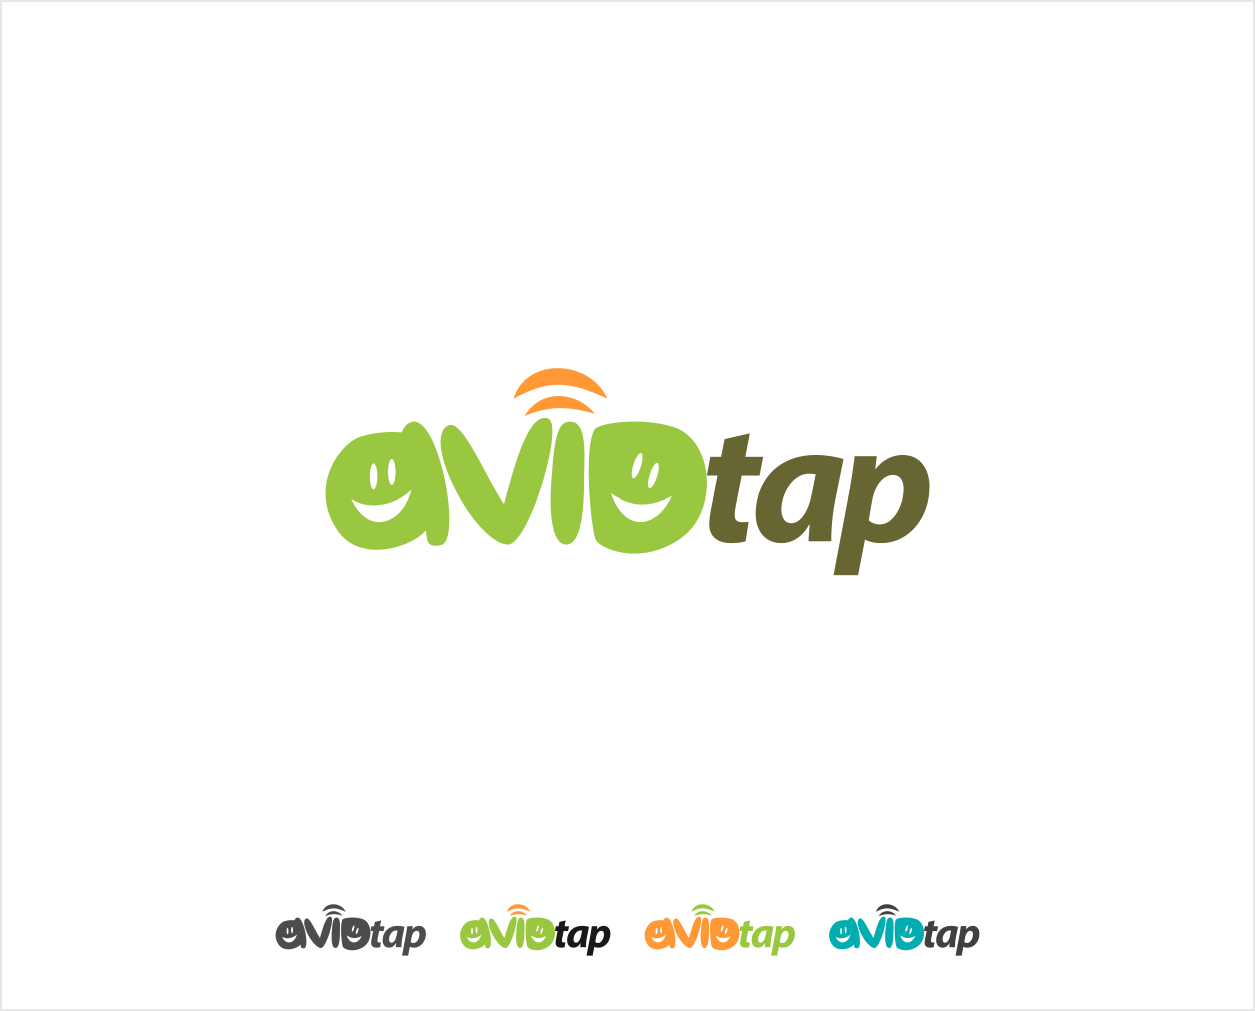 Logo Design by Jorge Sardon - Entry No. 46 in the Logo Design Contest Imaginative Logo Design for AvidTap.